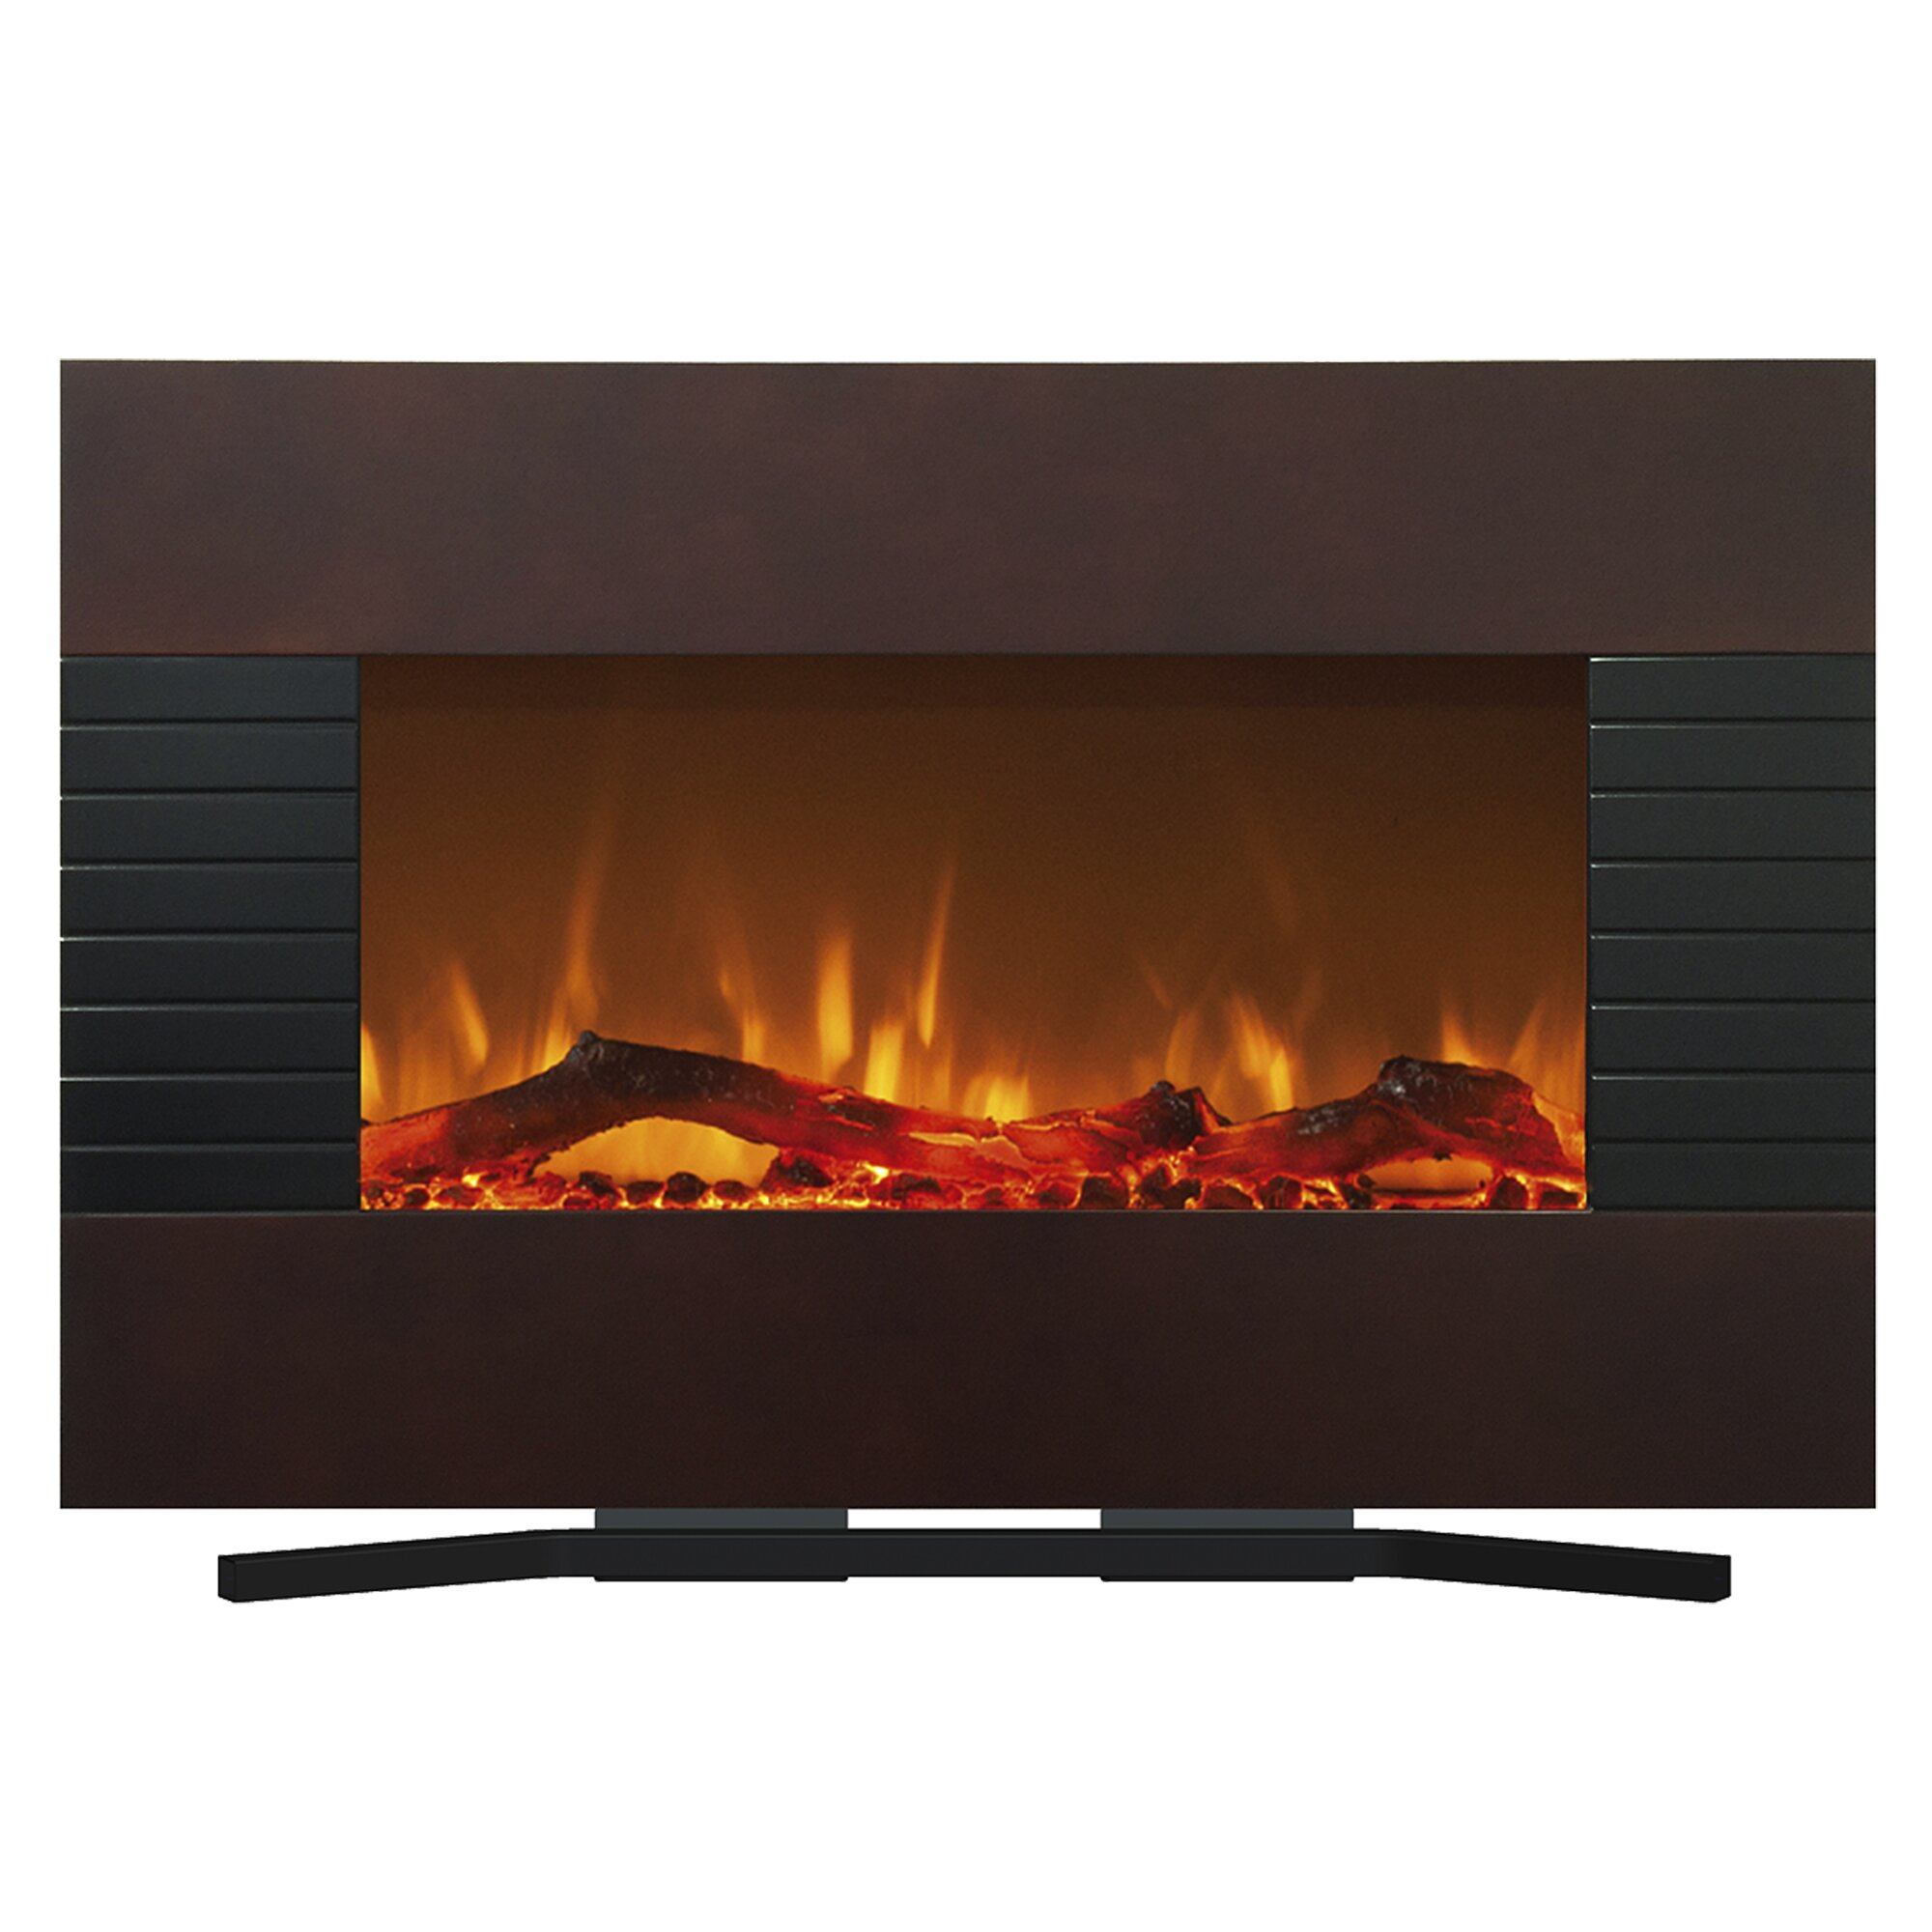 Natural gas wall mount fireplaces - Wall Mount Electric Fireplace